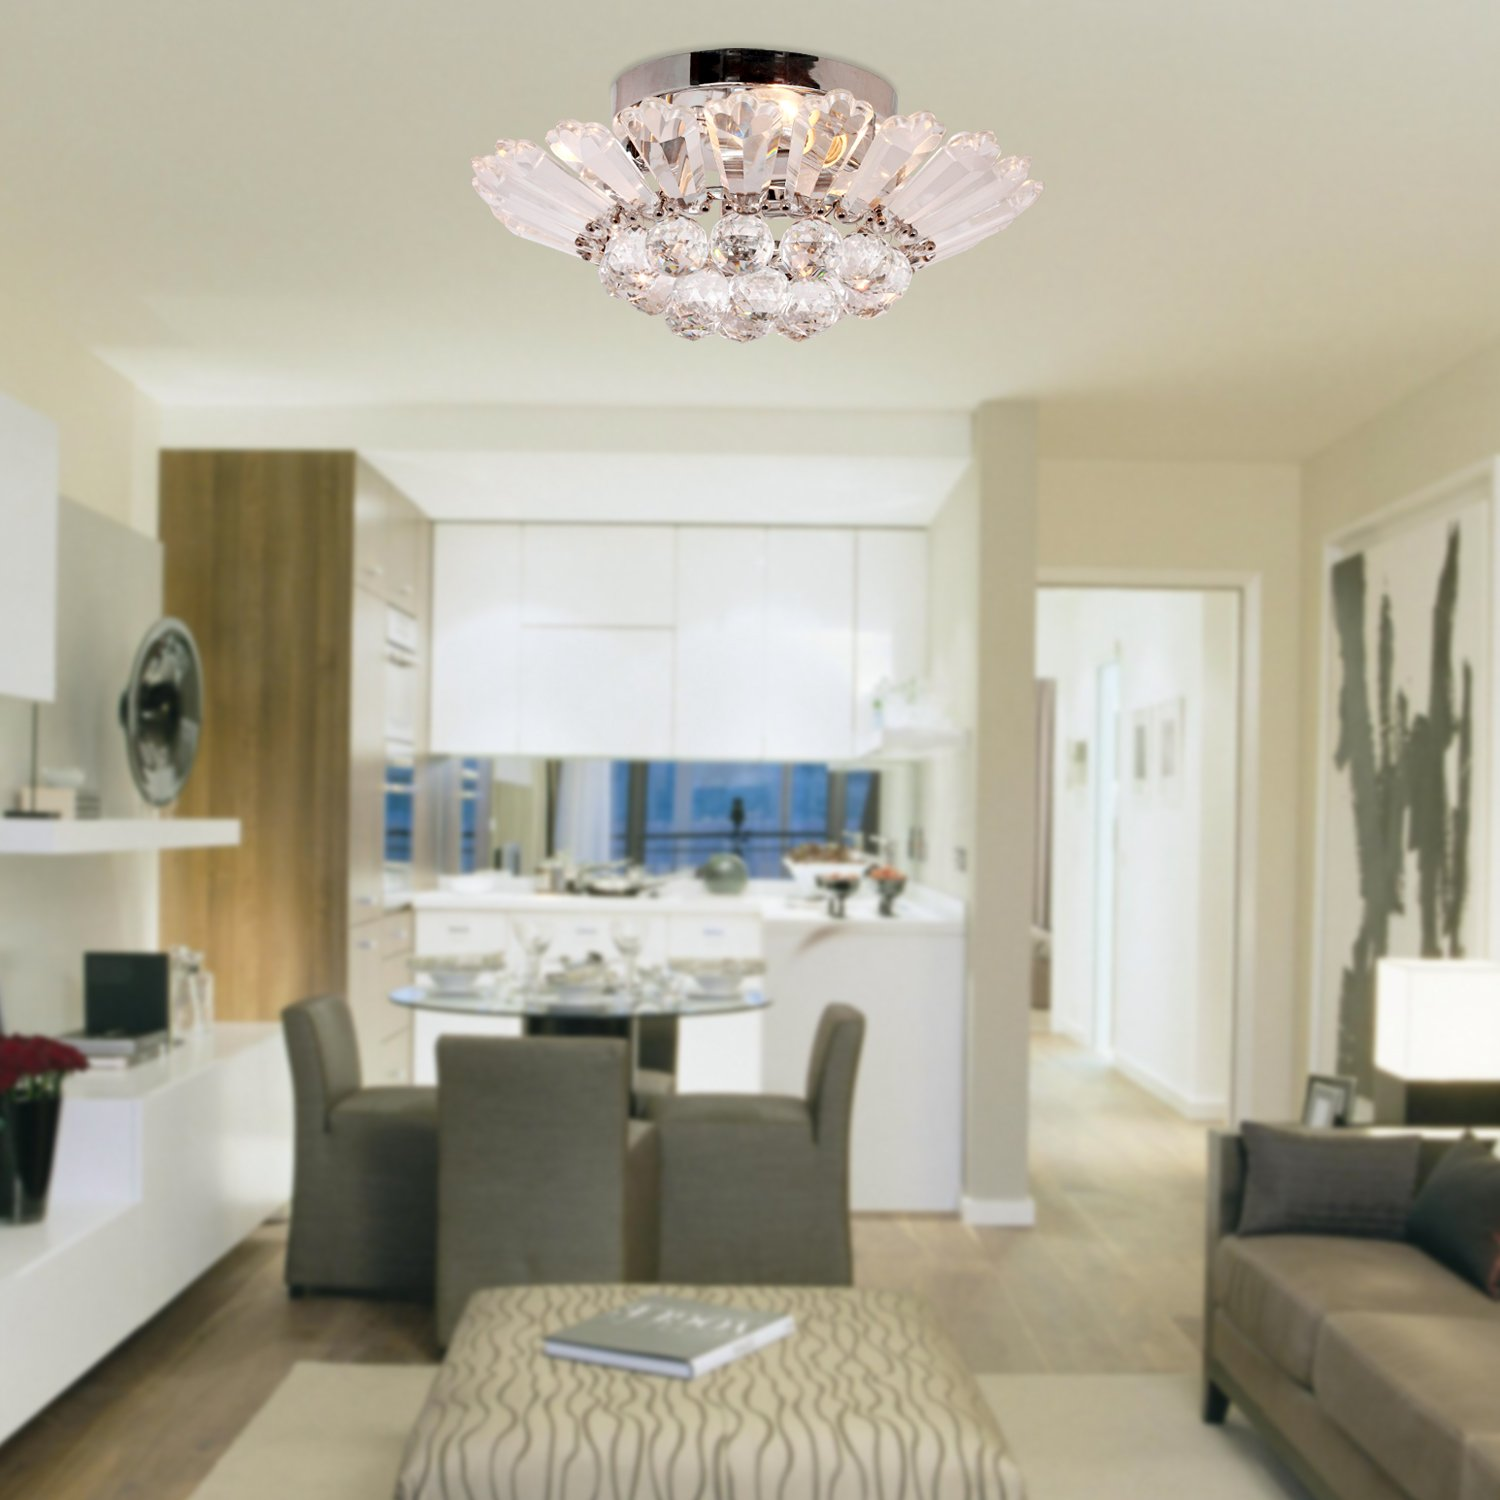 LightInTheBox Modern Semi - Flush Mount in Crystal Feature, Home ...